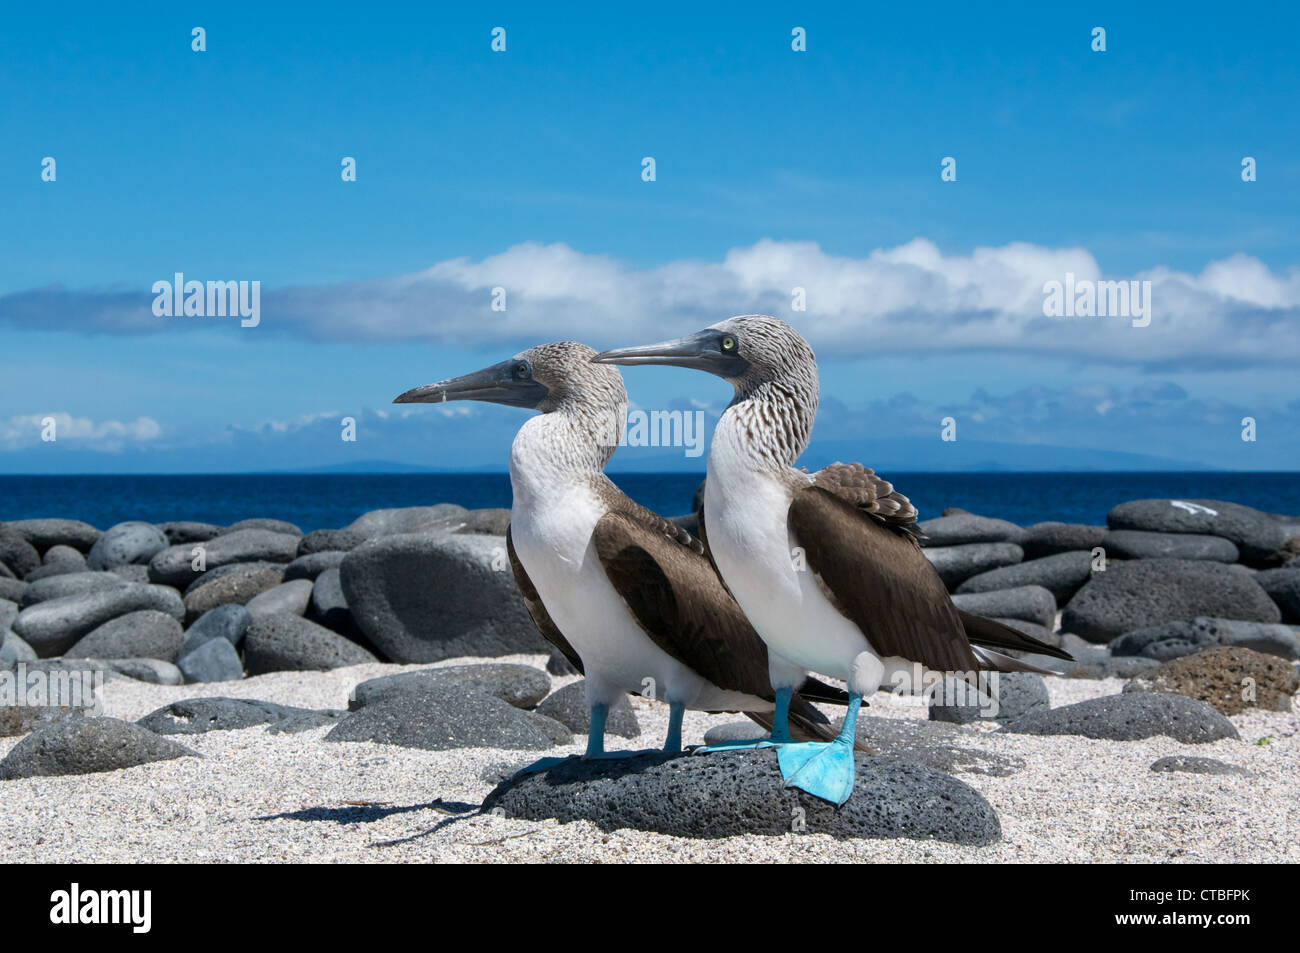 A pair of Blue-footed Boobies (Sula nebouxii) on a beautiful beach on North Seymour Island, Galapagos Islands, Ecuador. - Stock Image